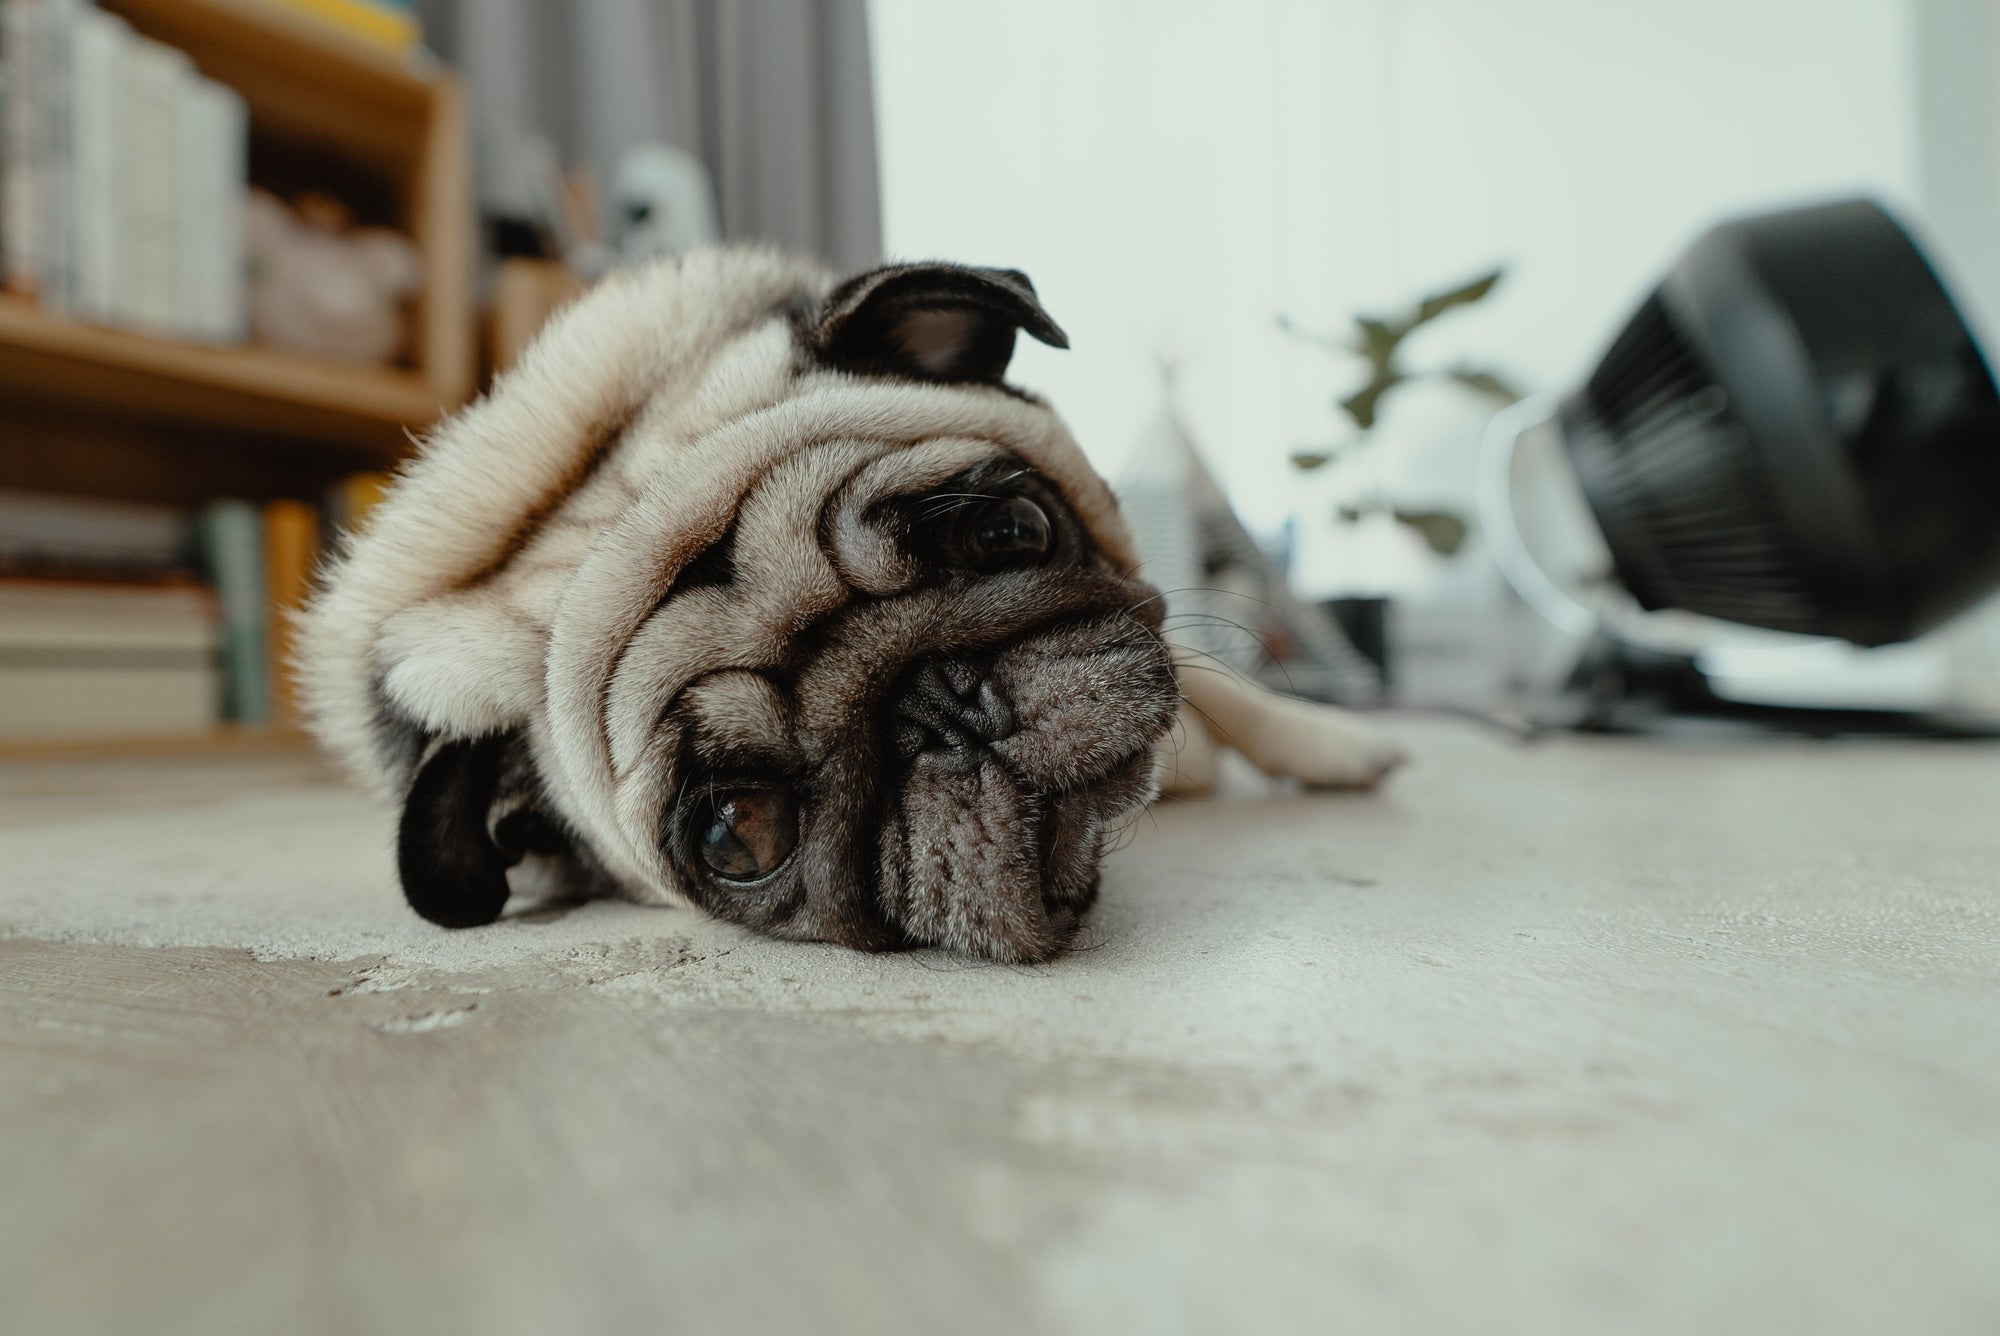 Sad pug laying on floor